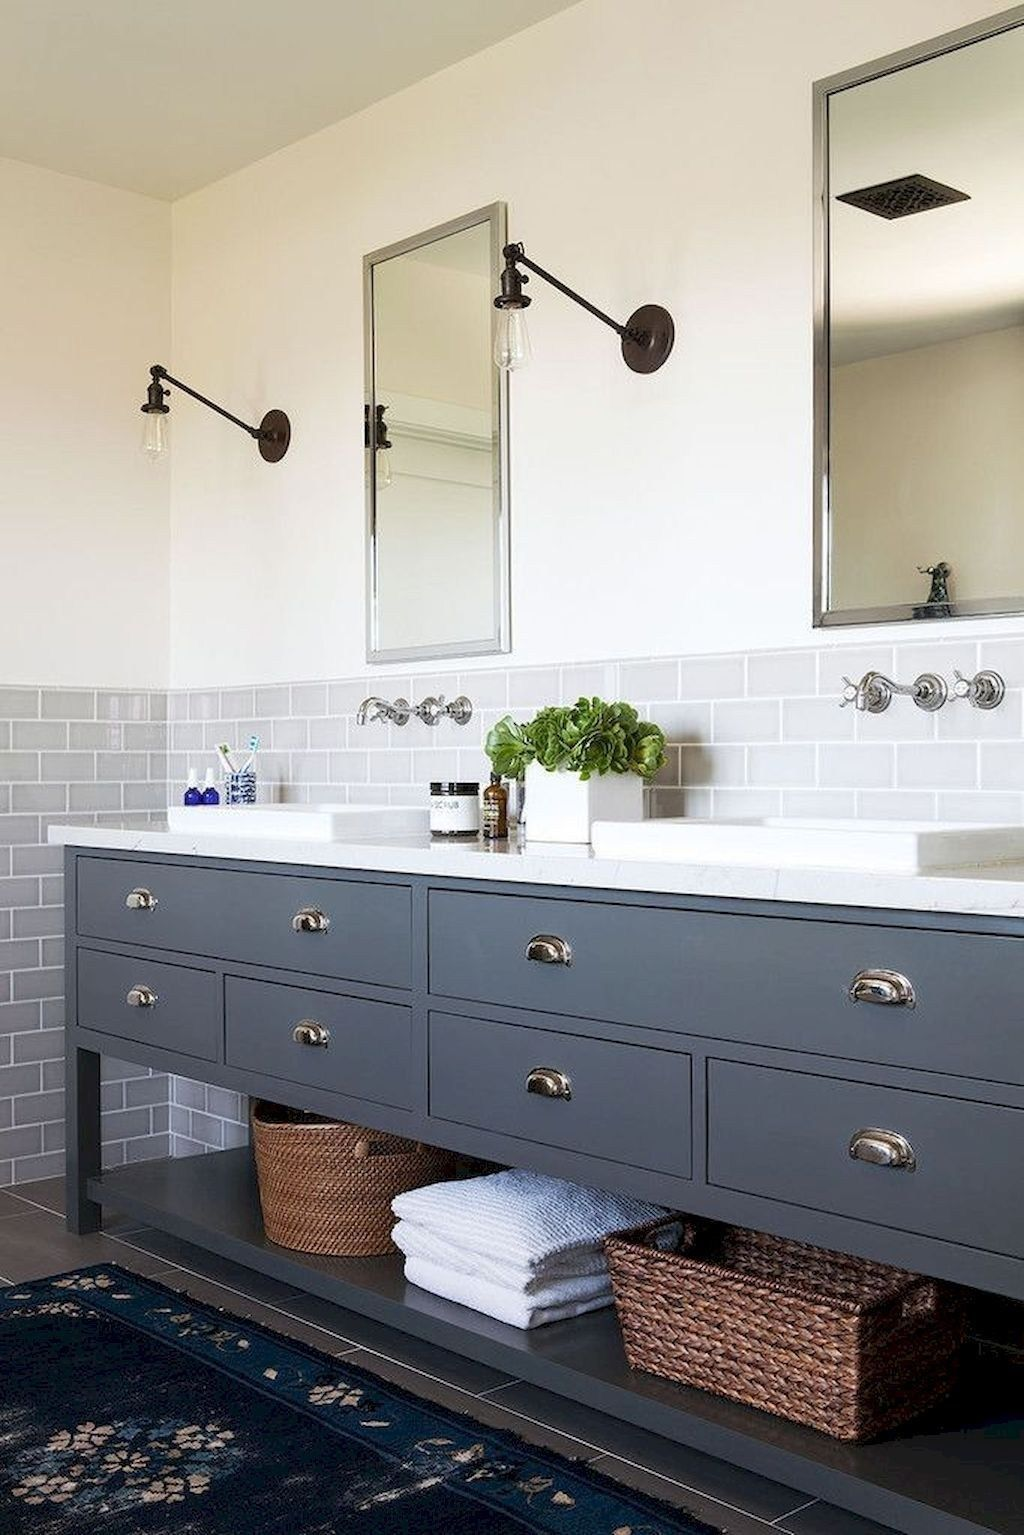 modern farmhouse bathroom vanity design ideas 27 tiny bath rh pinterest com